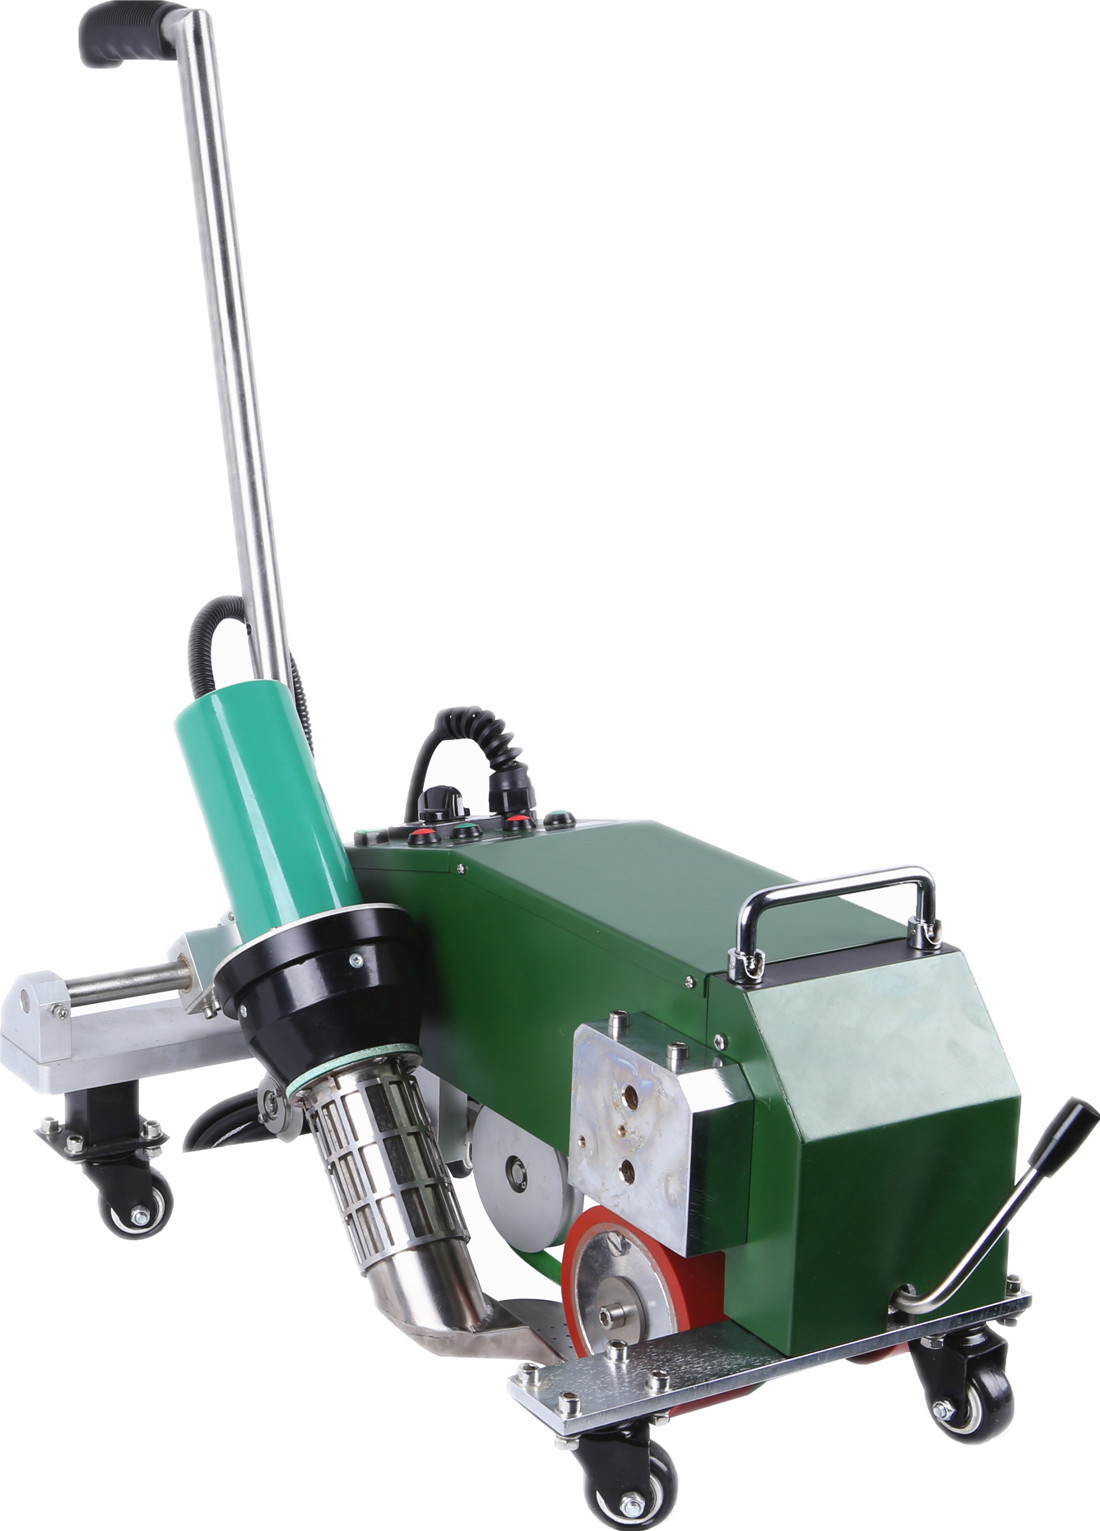 SWT-MAT1 hot air welding machine with automatic drive start system